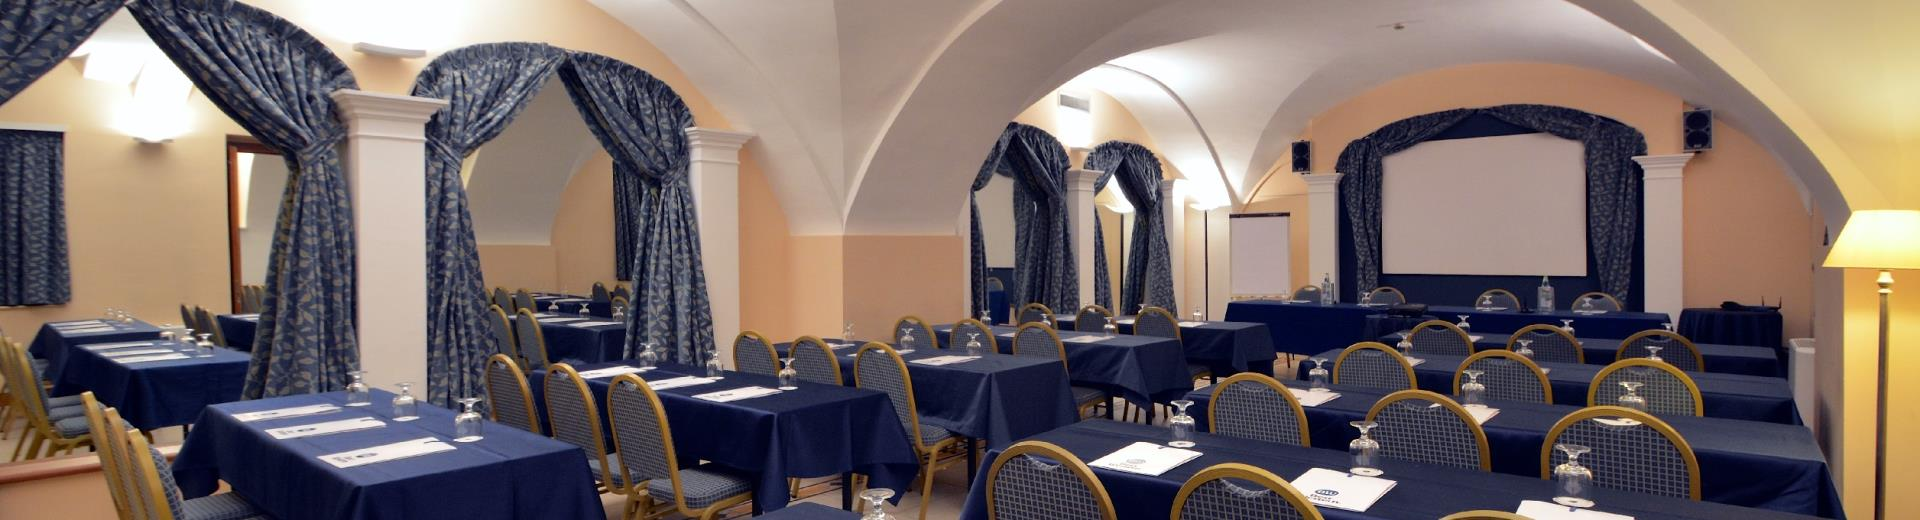 Arpino Meeting room for your business meetings